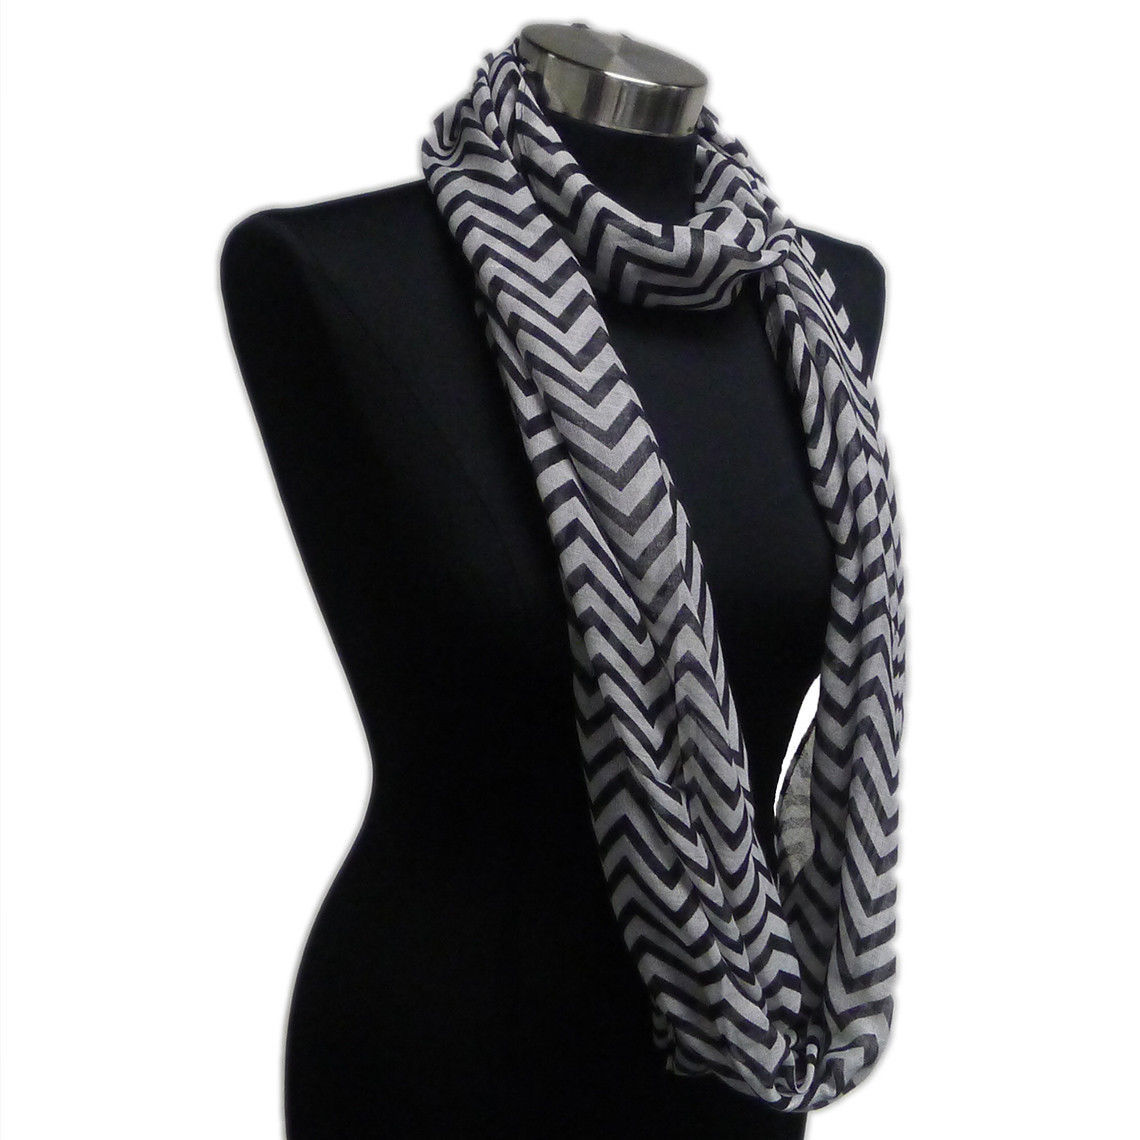 Primary image for Chevron Sheer Infinity Scarf Black Contrasting Colors Soft Warm Gift US Seller